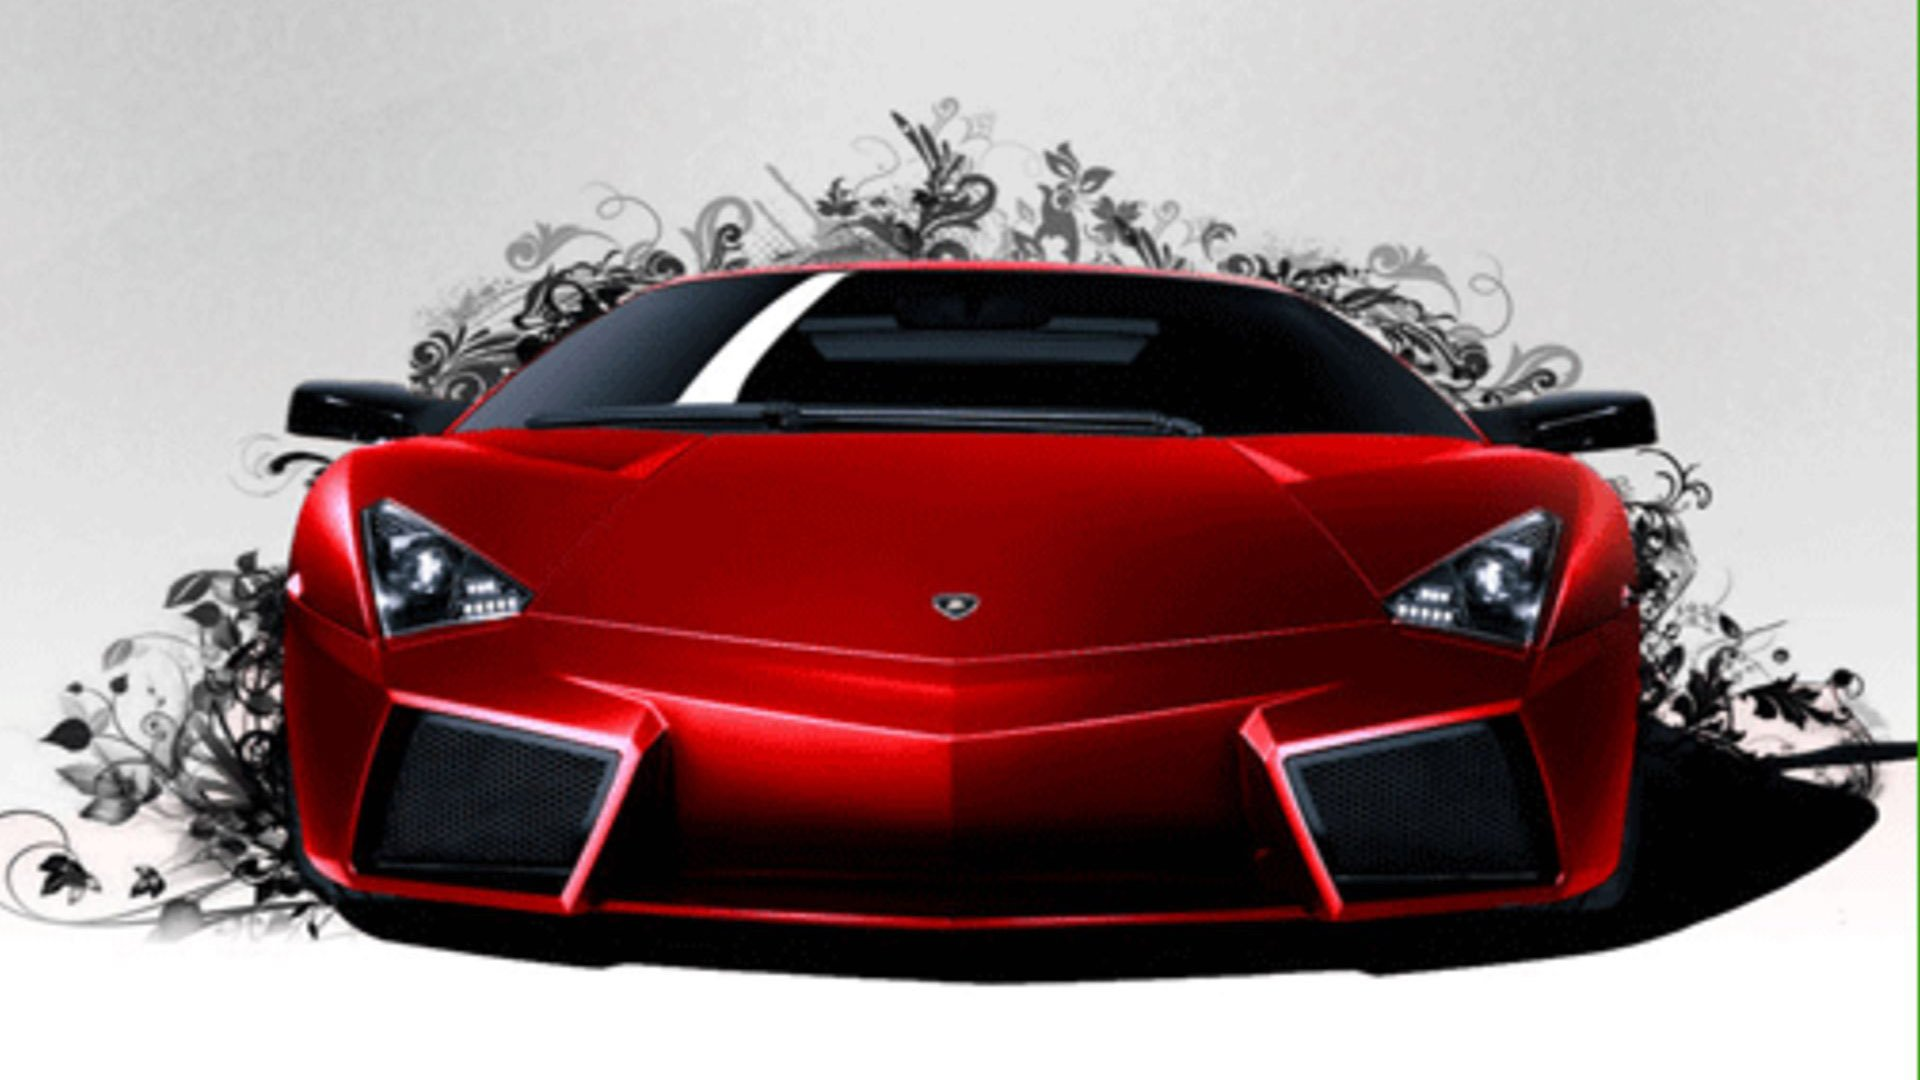 Red Lamborghini Wallpaper 6442 Hd Wallpapers in Cars   Imagescicom 1920x1080